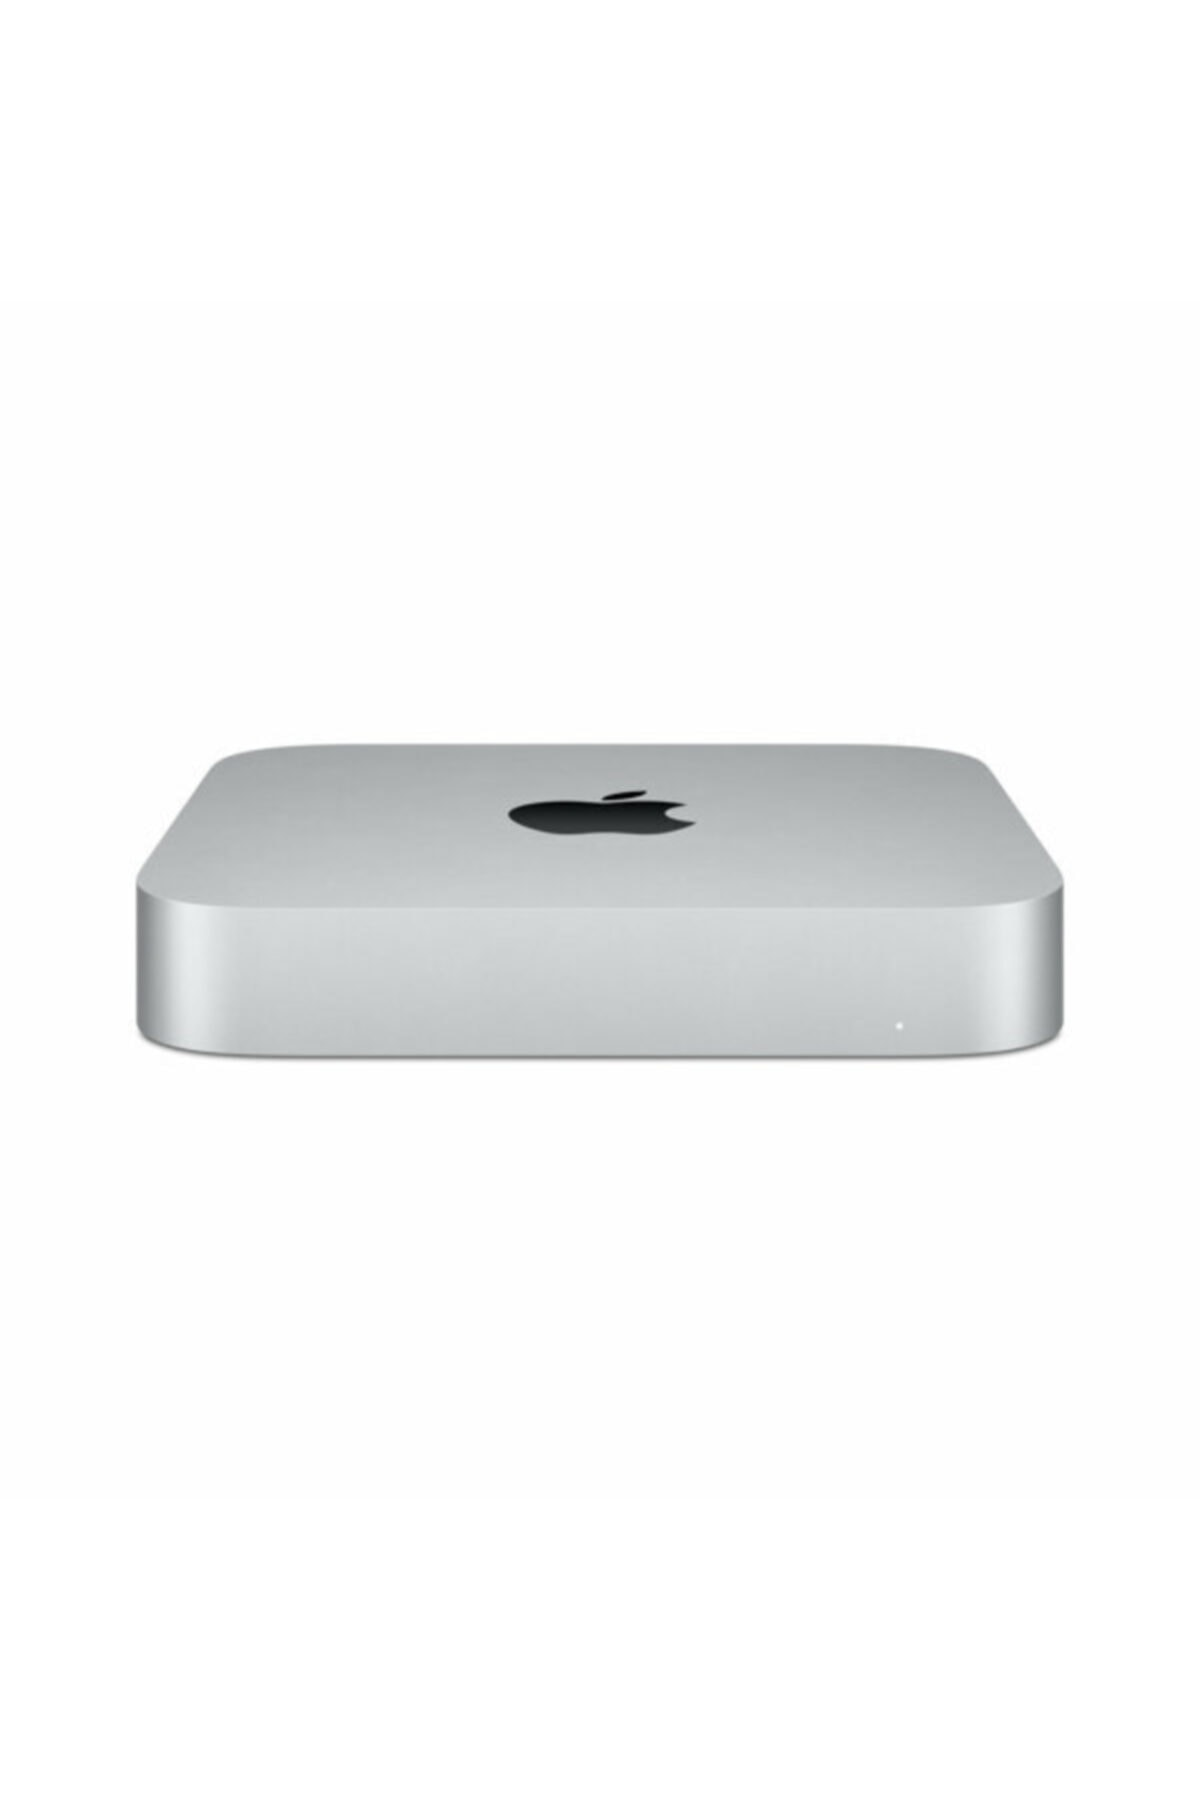 Apple Mac Mini M1 8c Cpu 8gb Ram 256gb Ssd Gümüş Mini Pc Mgnr3tu/a 1